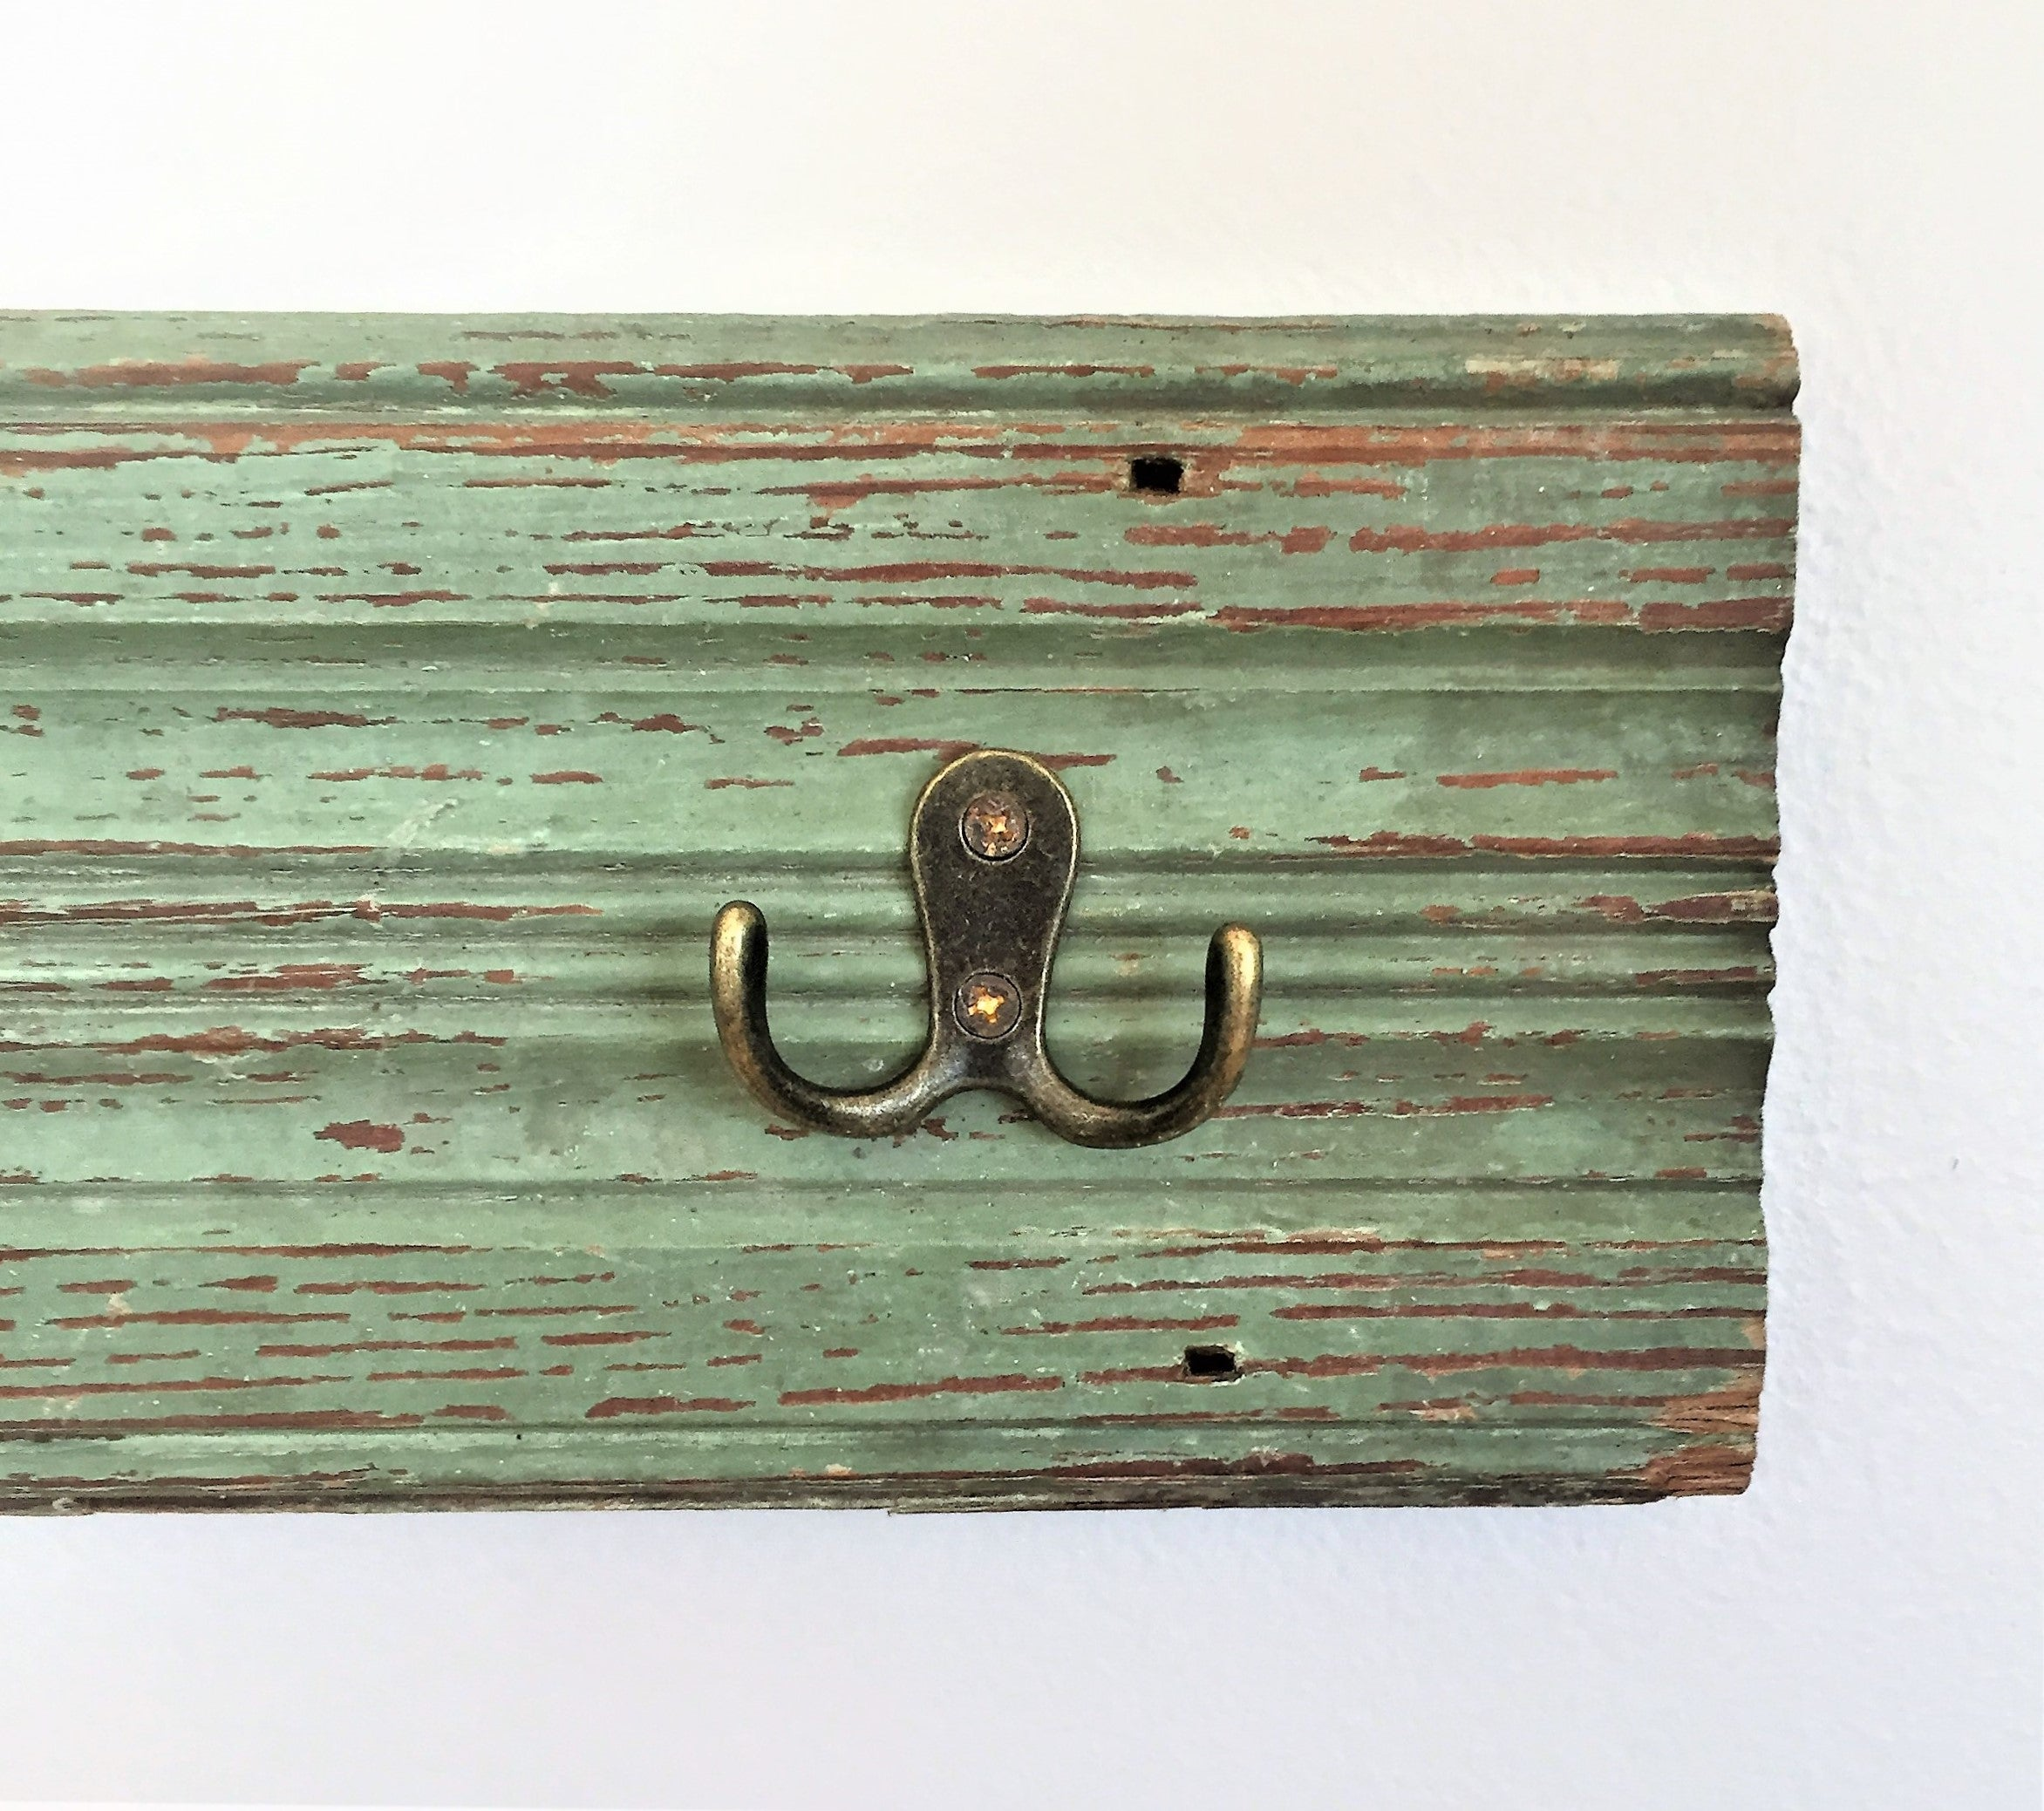 Vintage Trim Hook Rack